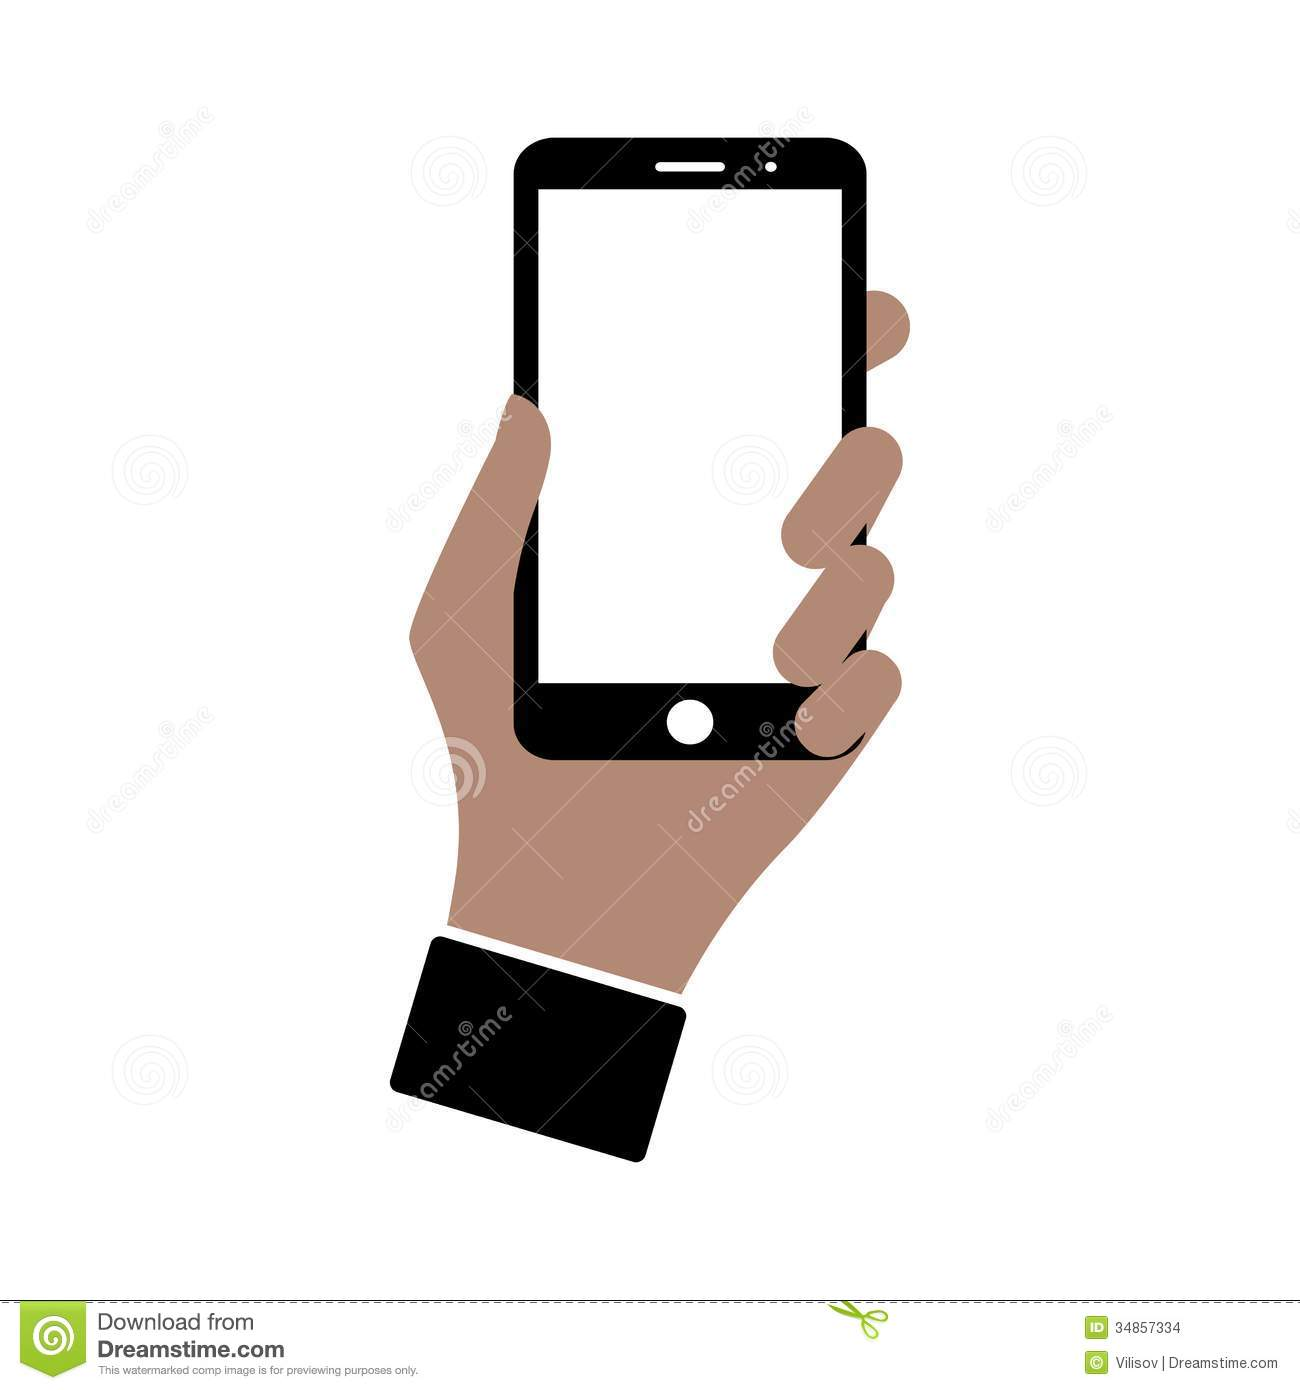 7 Smartphone Icon Vector Images - Cell Phone Icon Clip Art ...